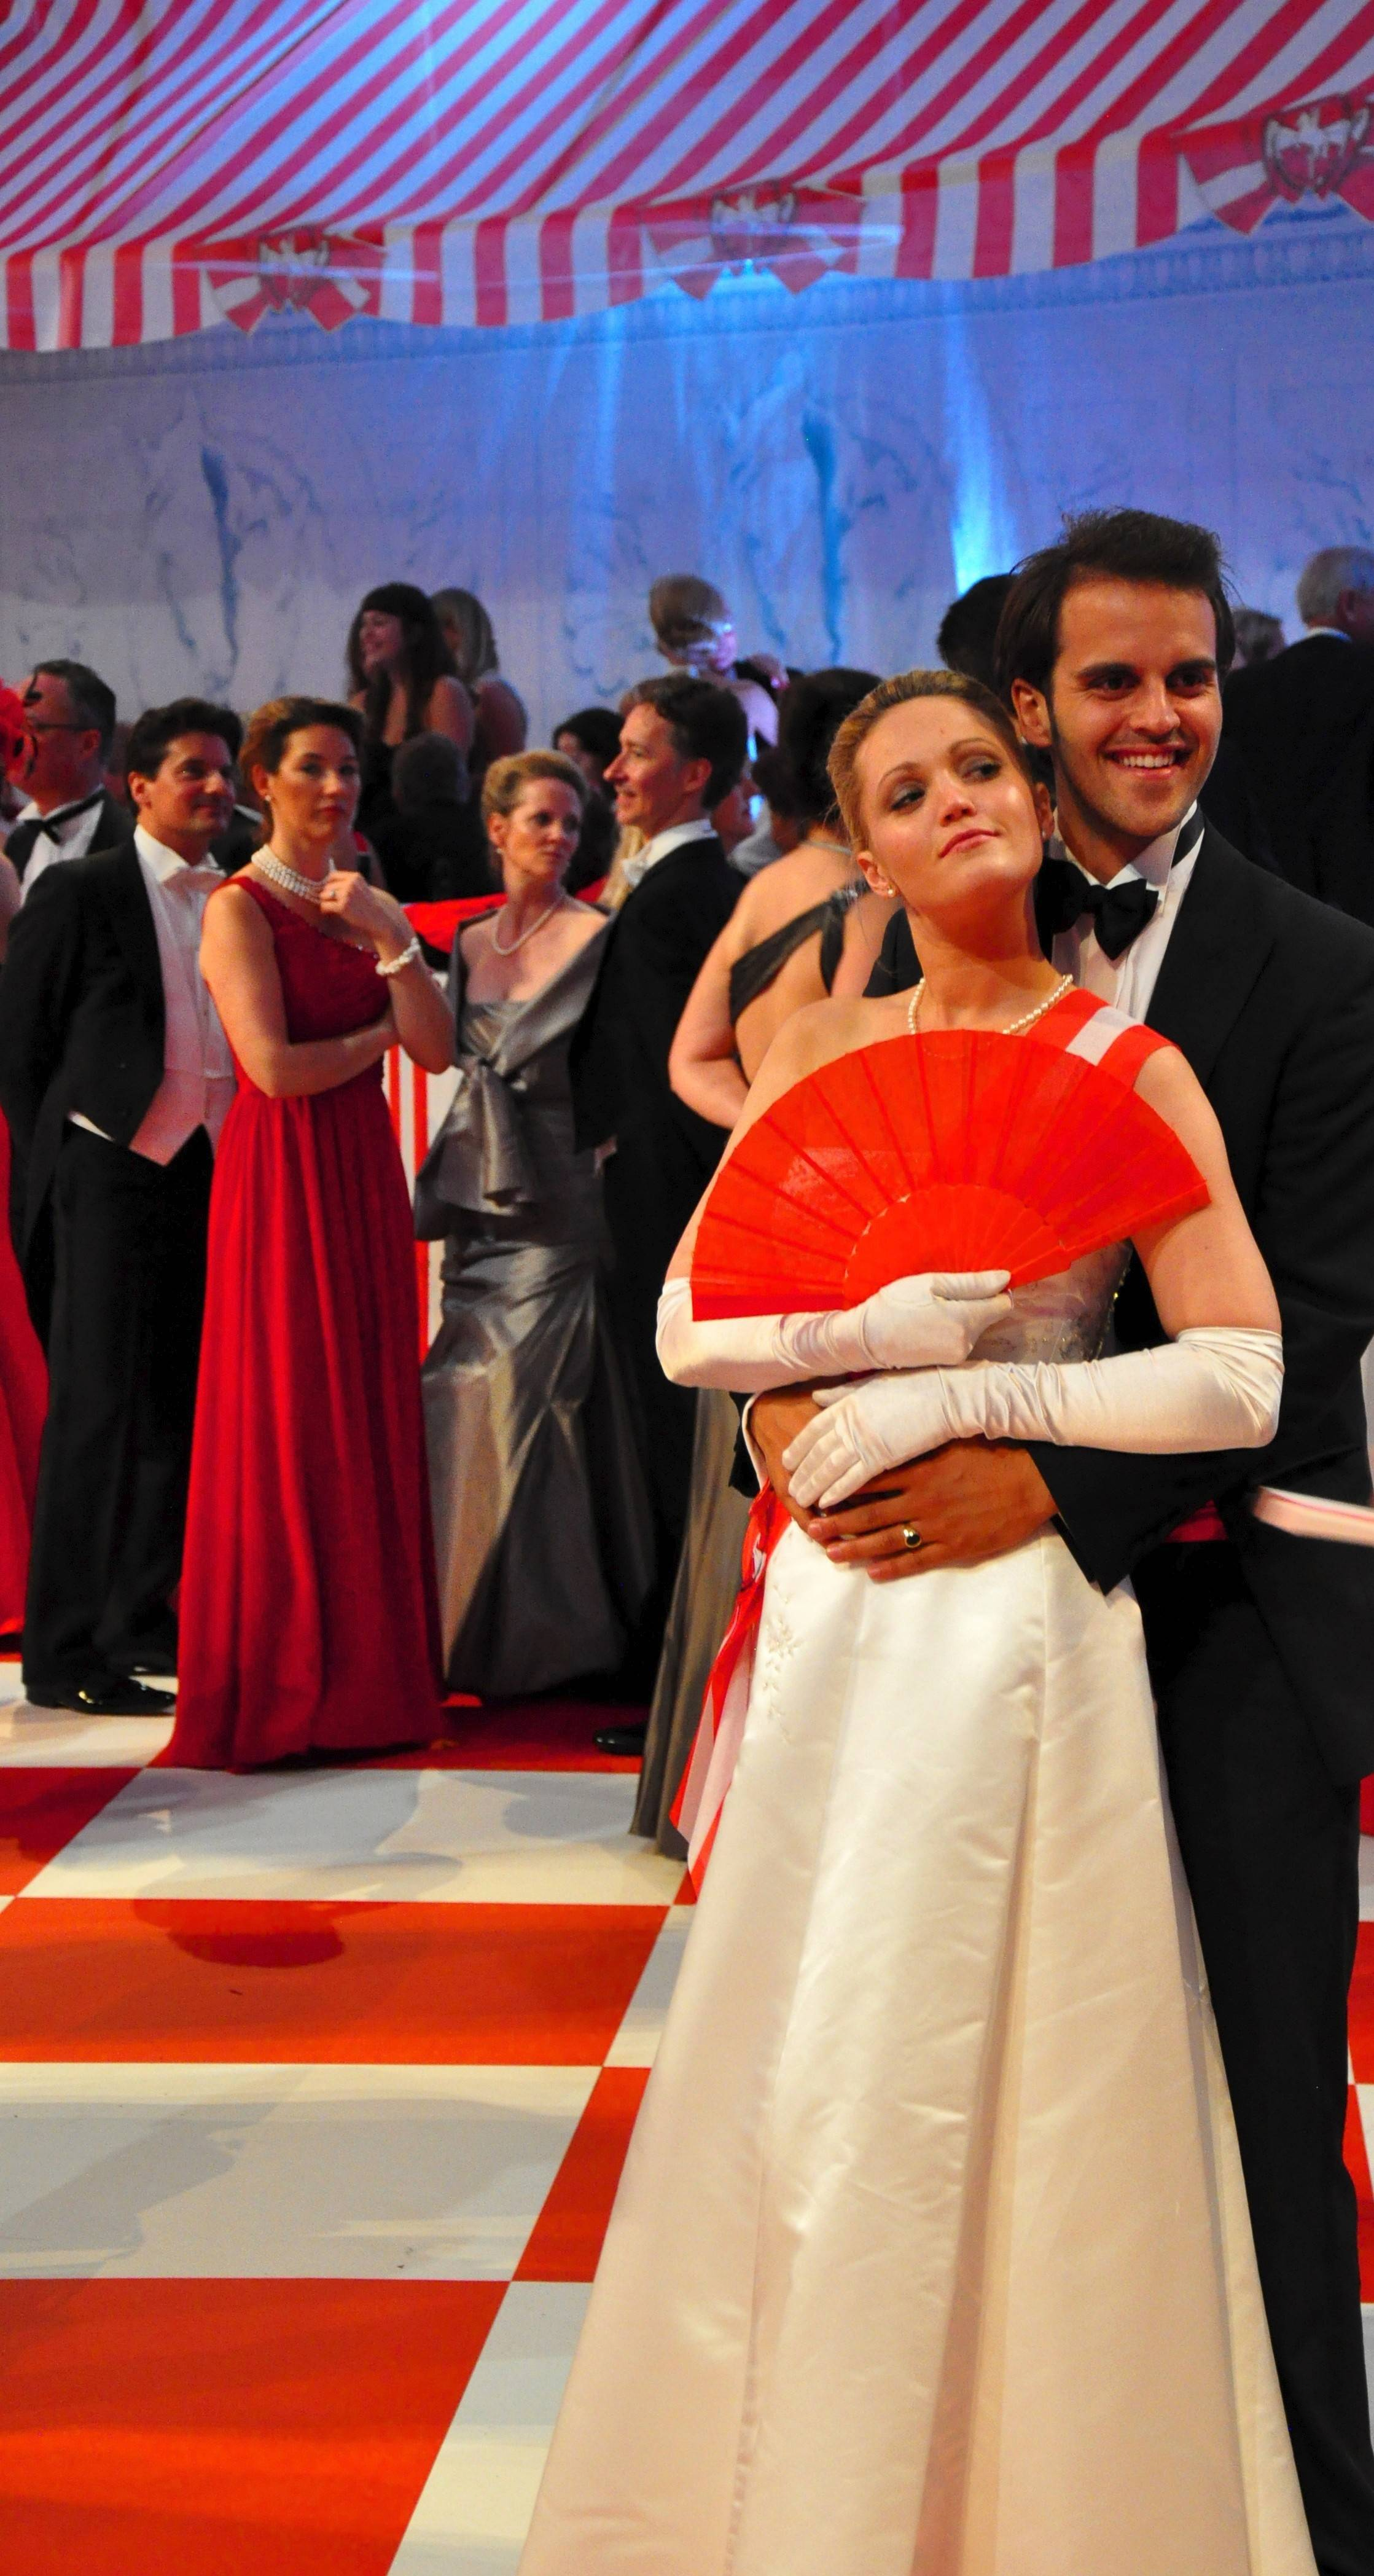 Couples take a break from dancing during a long night of entertainment at the Fete Imperiale ball in Vienna, Austria.